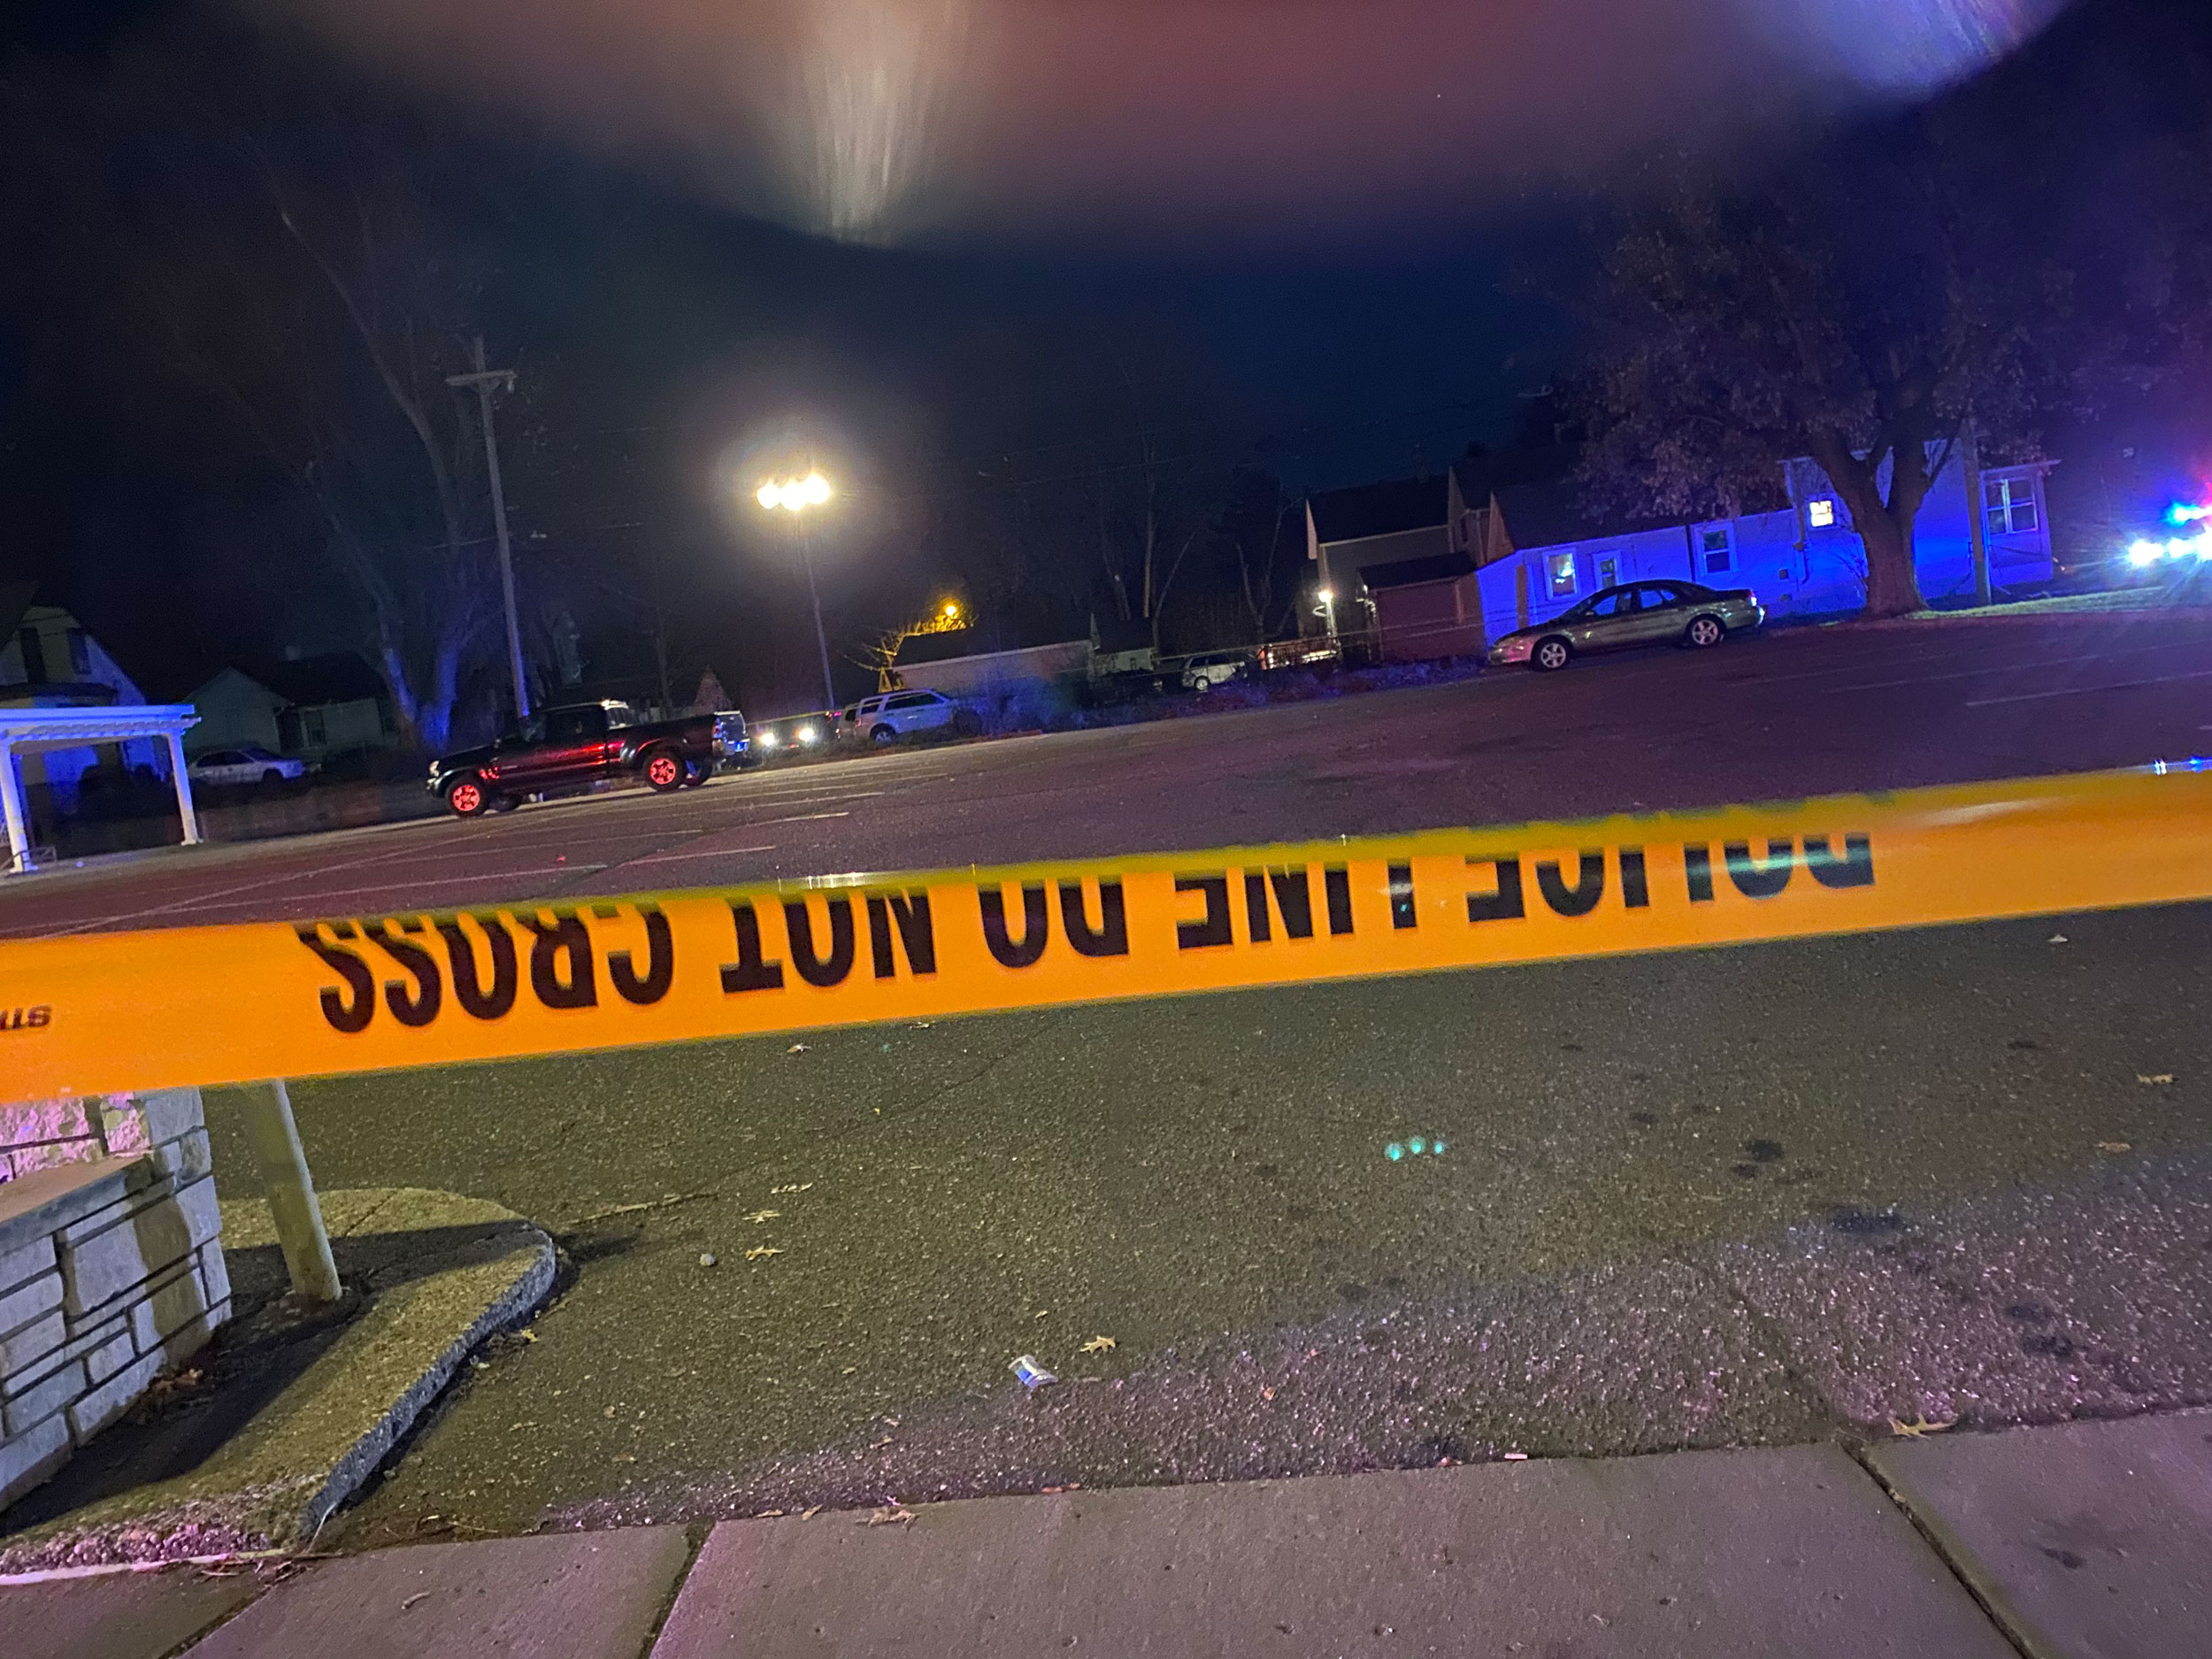 Man shot and hospitalized when, police say, he ran toward them after hiding in a dumpster